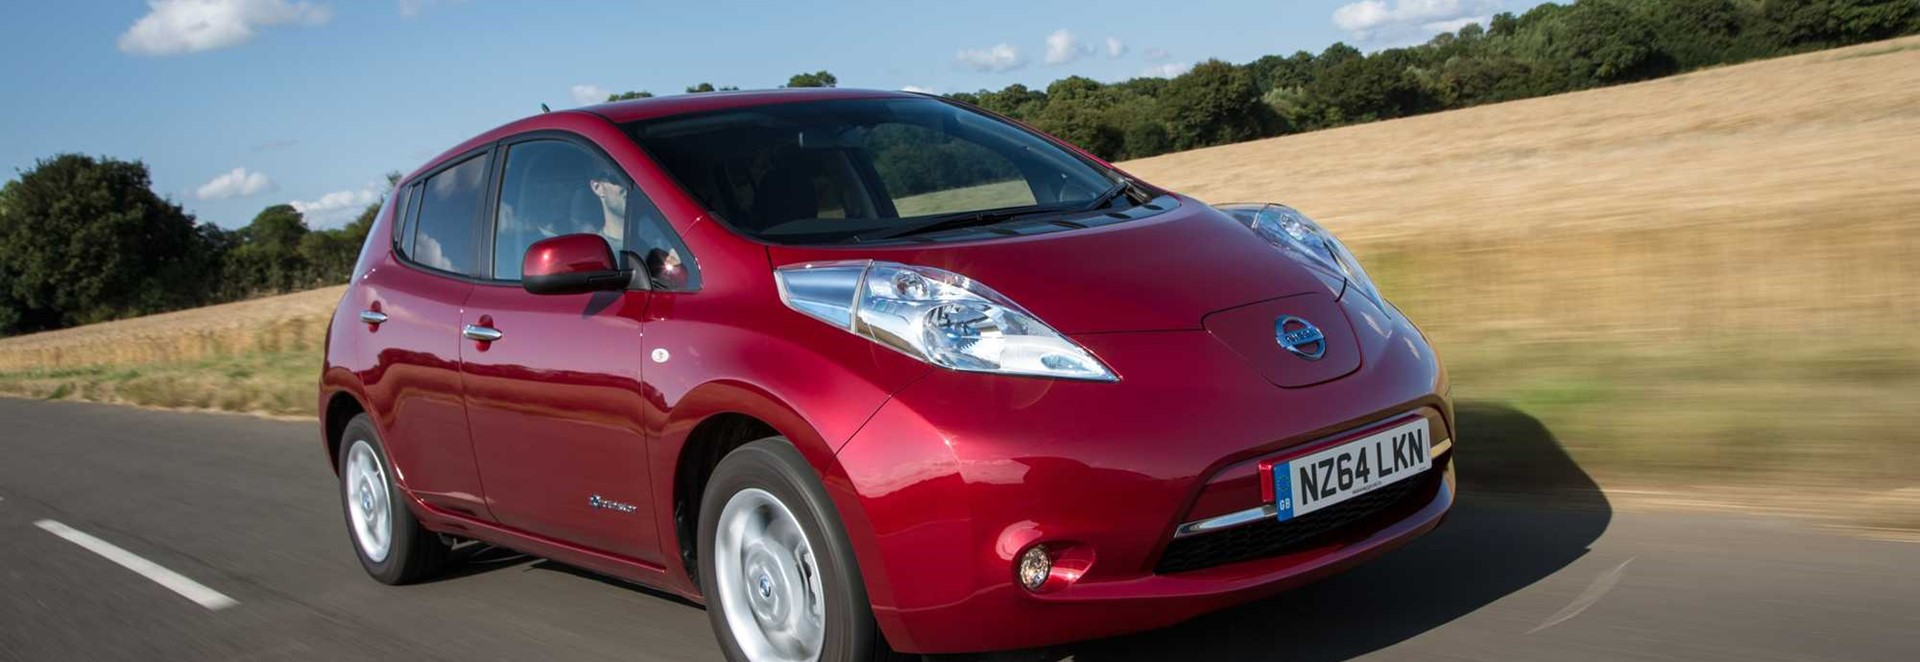 nissan leaf tekna hatchback launch report car keys. Black Bedroom Furniture Sets. Home Design Ideas